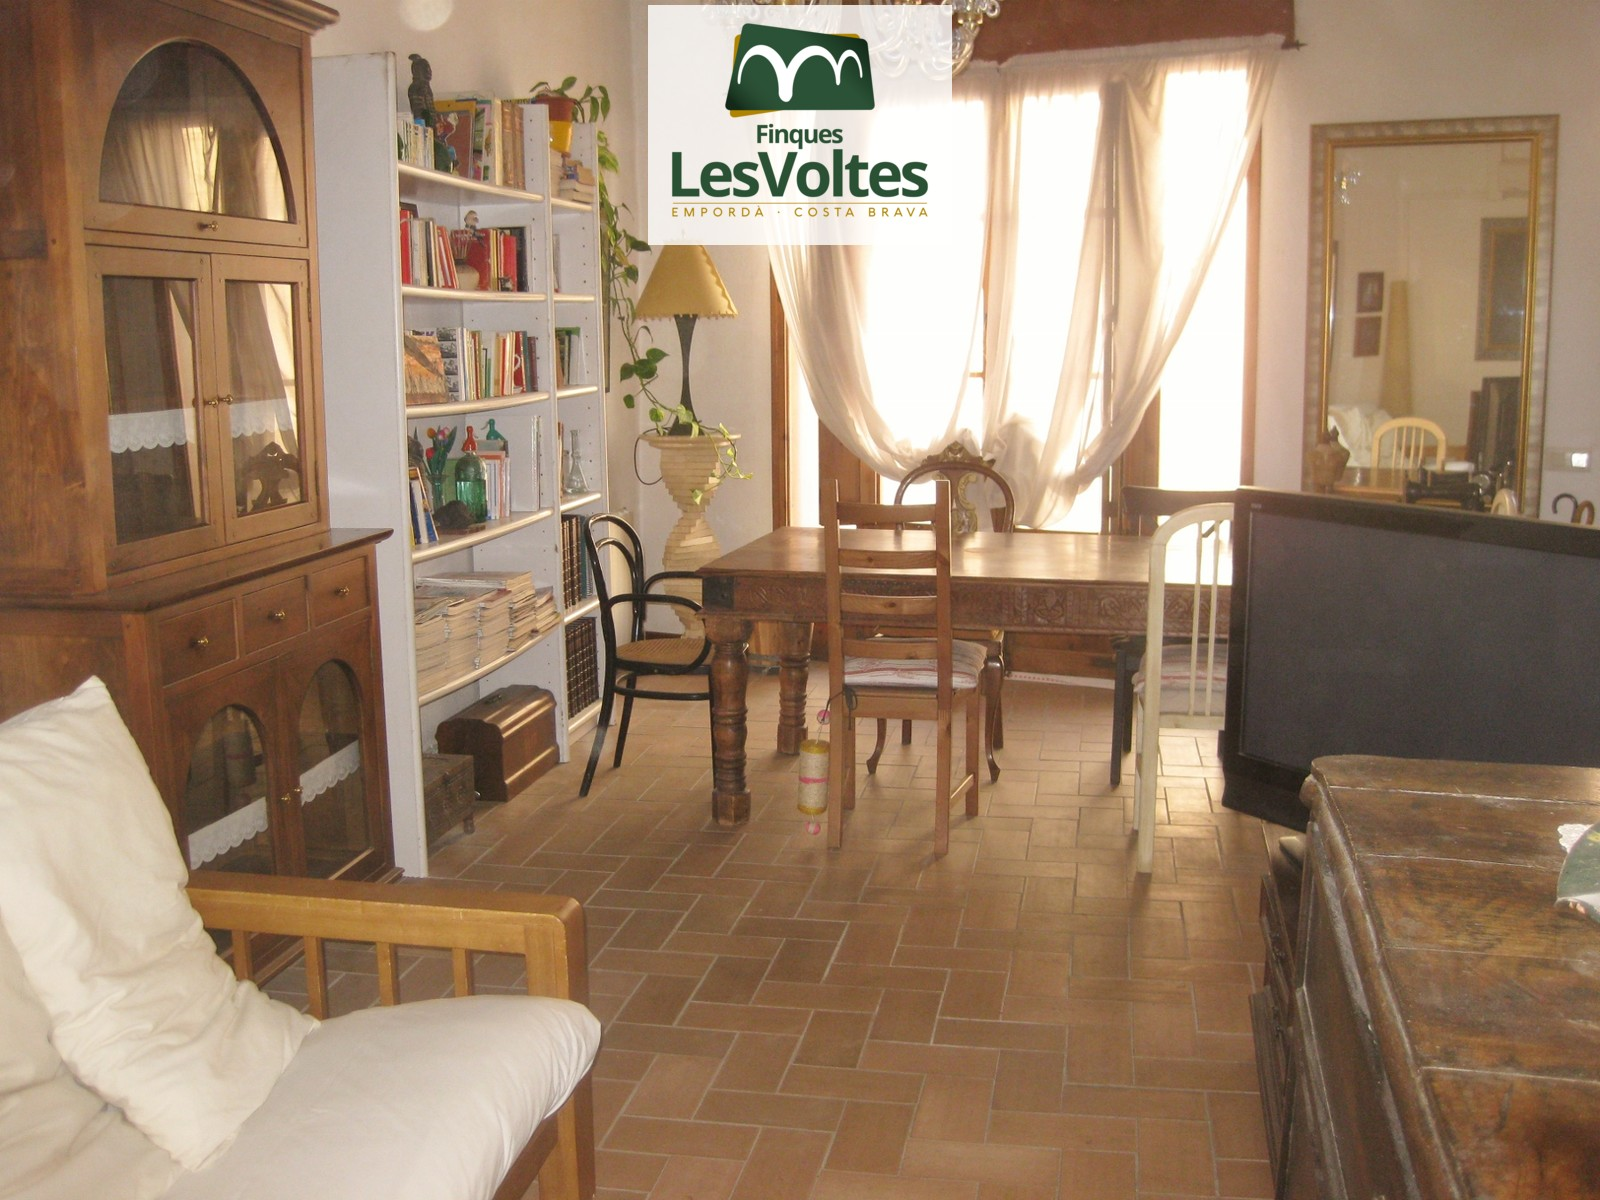 CHARMING RUSTIC HOUSE FOR SALE IN LA BISBAL D'EMPORDÀ. GREAT OPPORTUNITY!